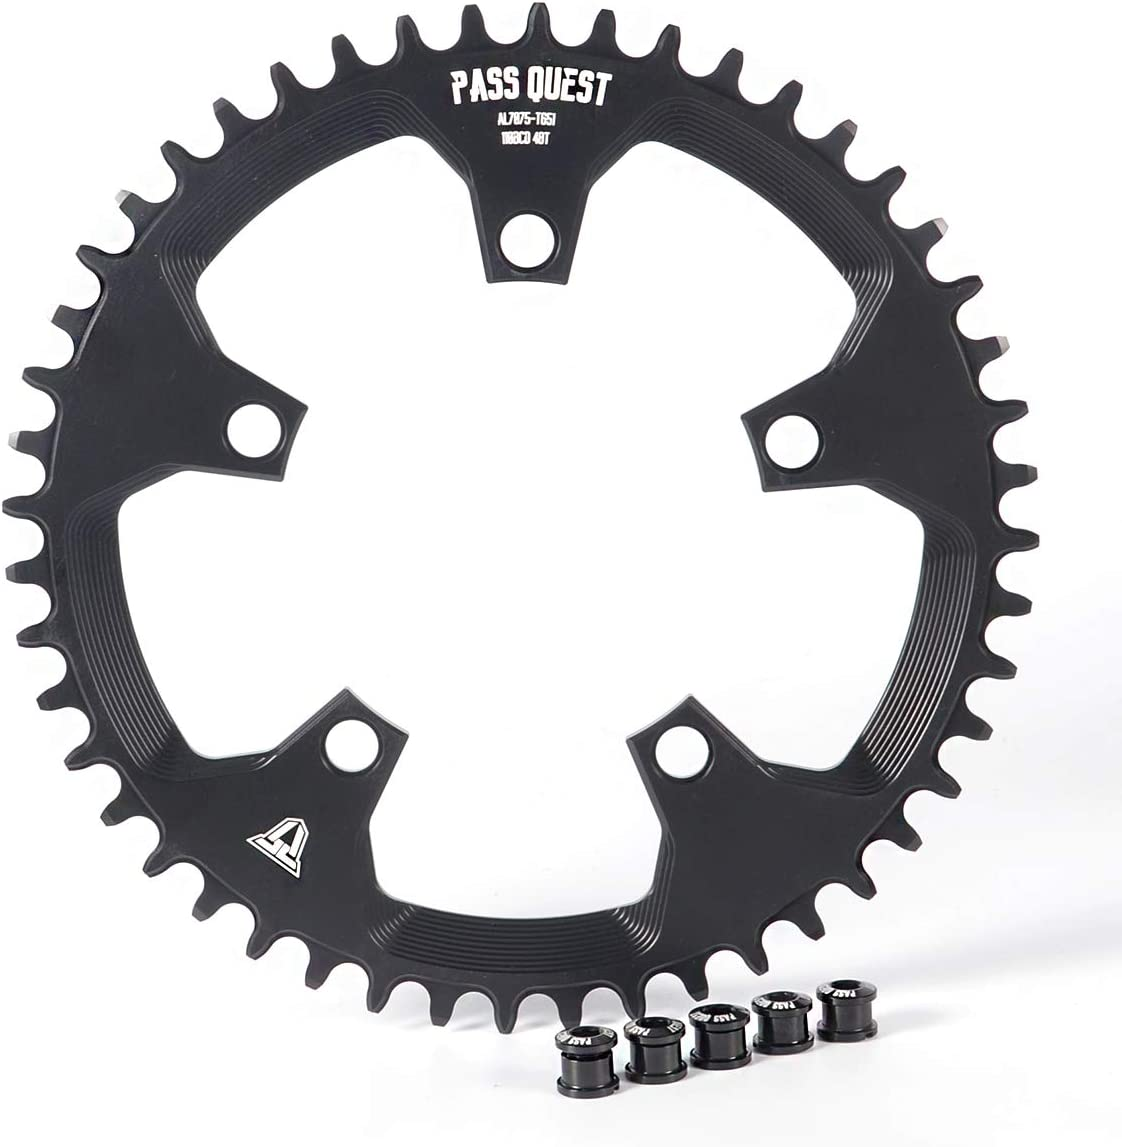 PASS QUEST 110BCD Road Bike Narrow Wide Chainring 42T-52T Bike Chainwheel for sram 3550 APEX RED